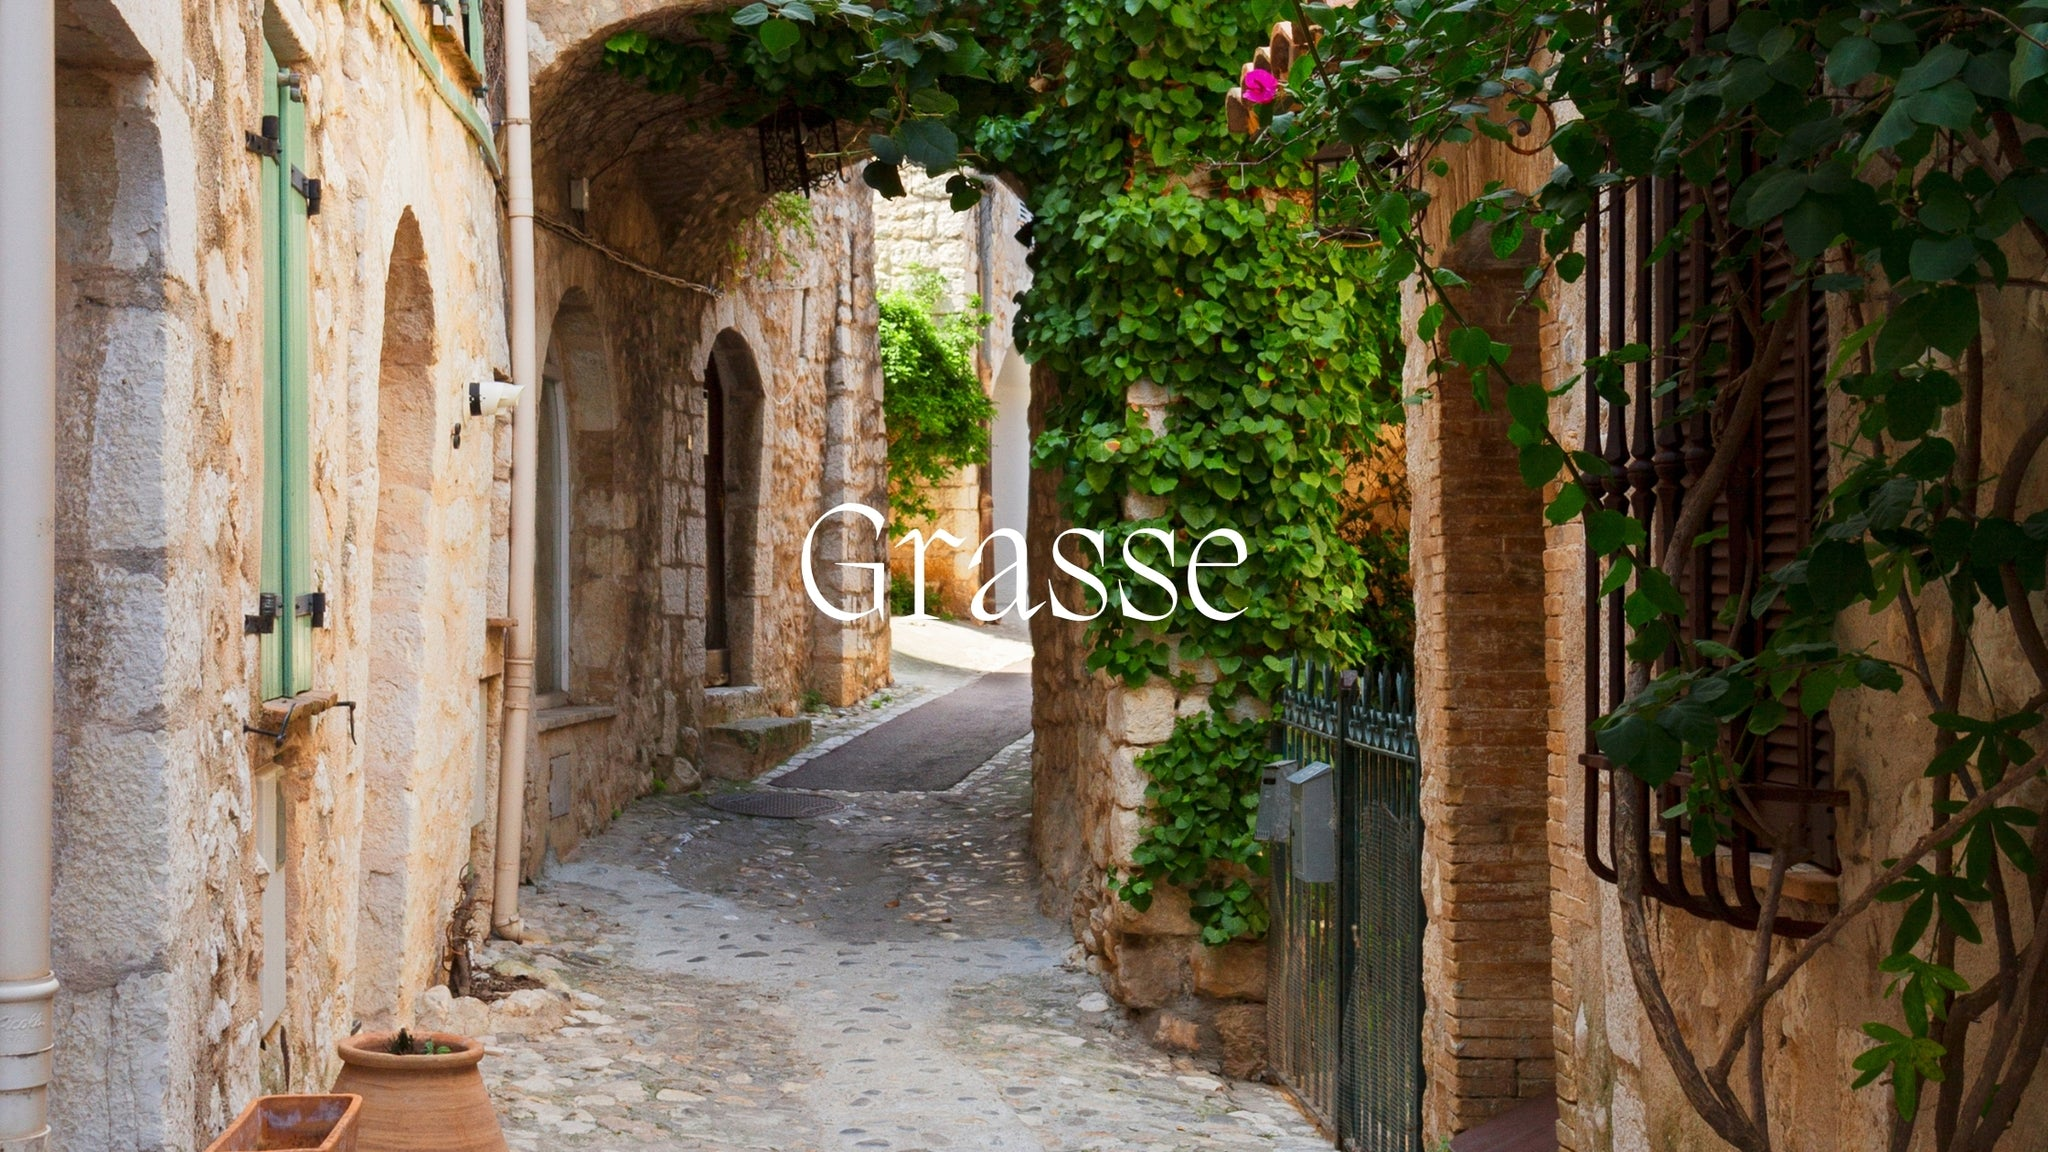 image of the streets of Grasse with the name written on it